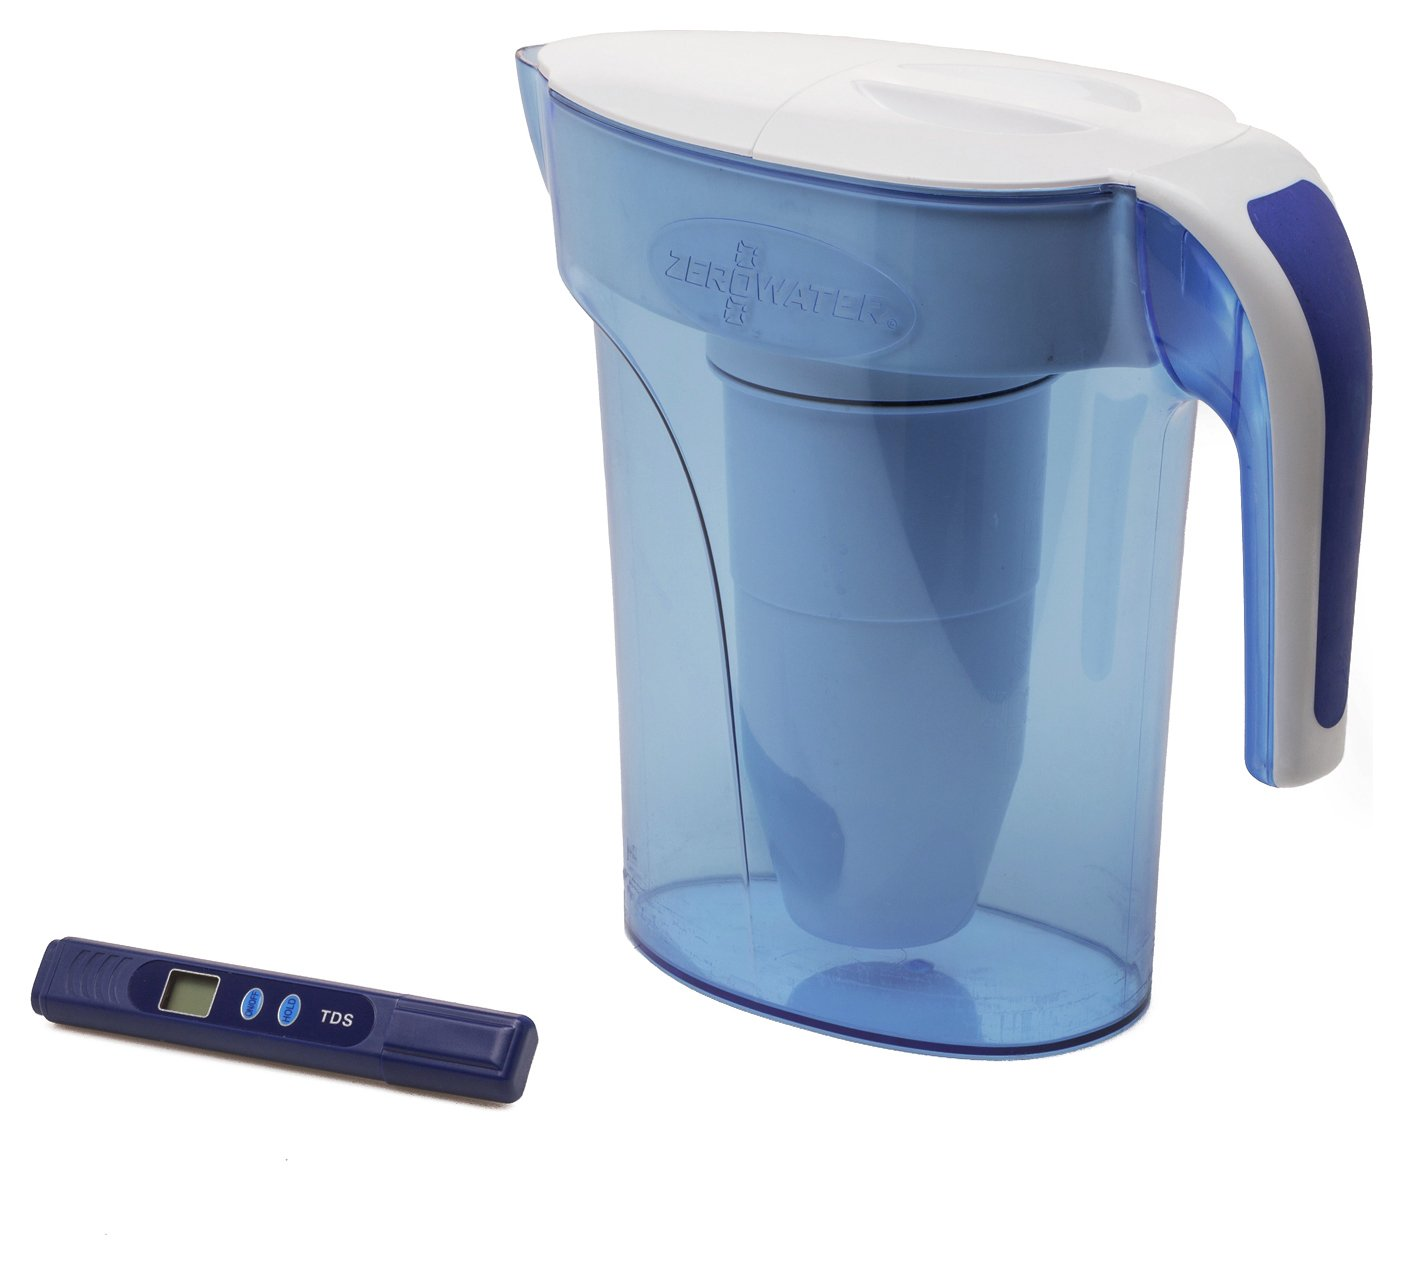 Zerowater 7 Cup Water Filter Jug - Blue